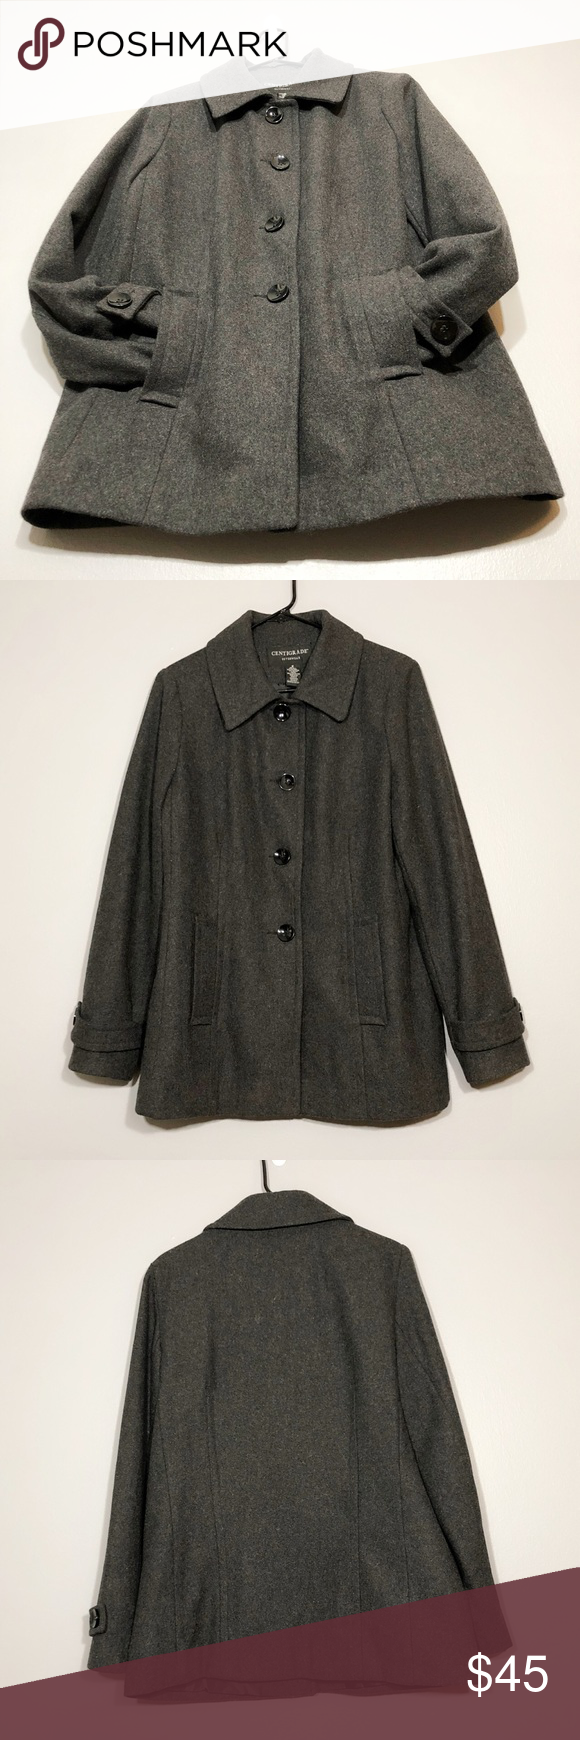 Centigrade Outerwear Button Up Wool Pea Coat Pre Owned In A Perfect Condition Size M Button Up 2 Pockets Full Peacoat Jacket Wool Peacoat Outerwear [ 1740 x 580 Pixel ]